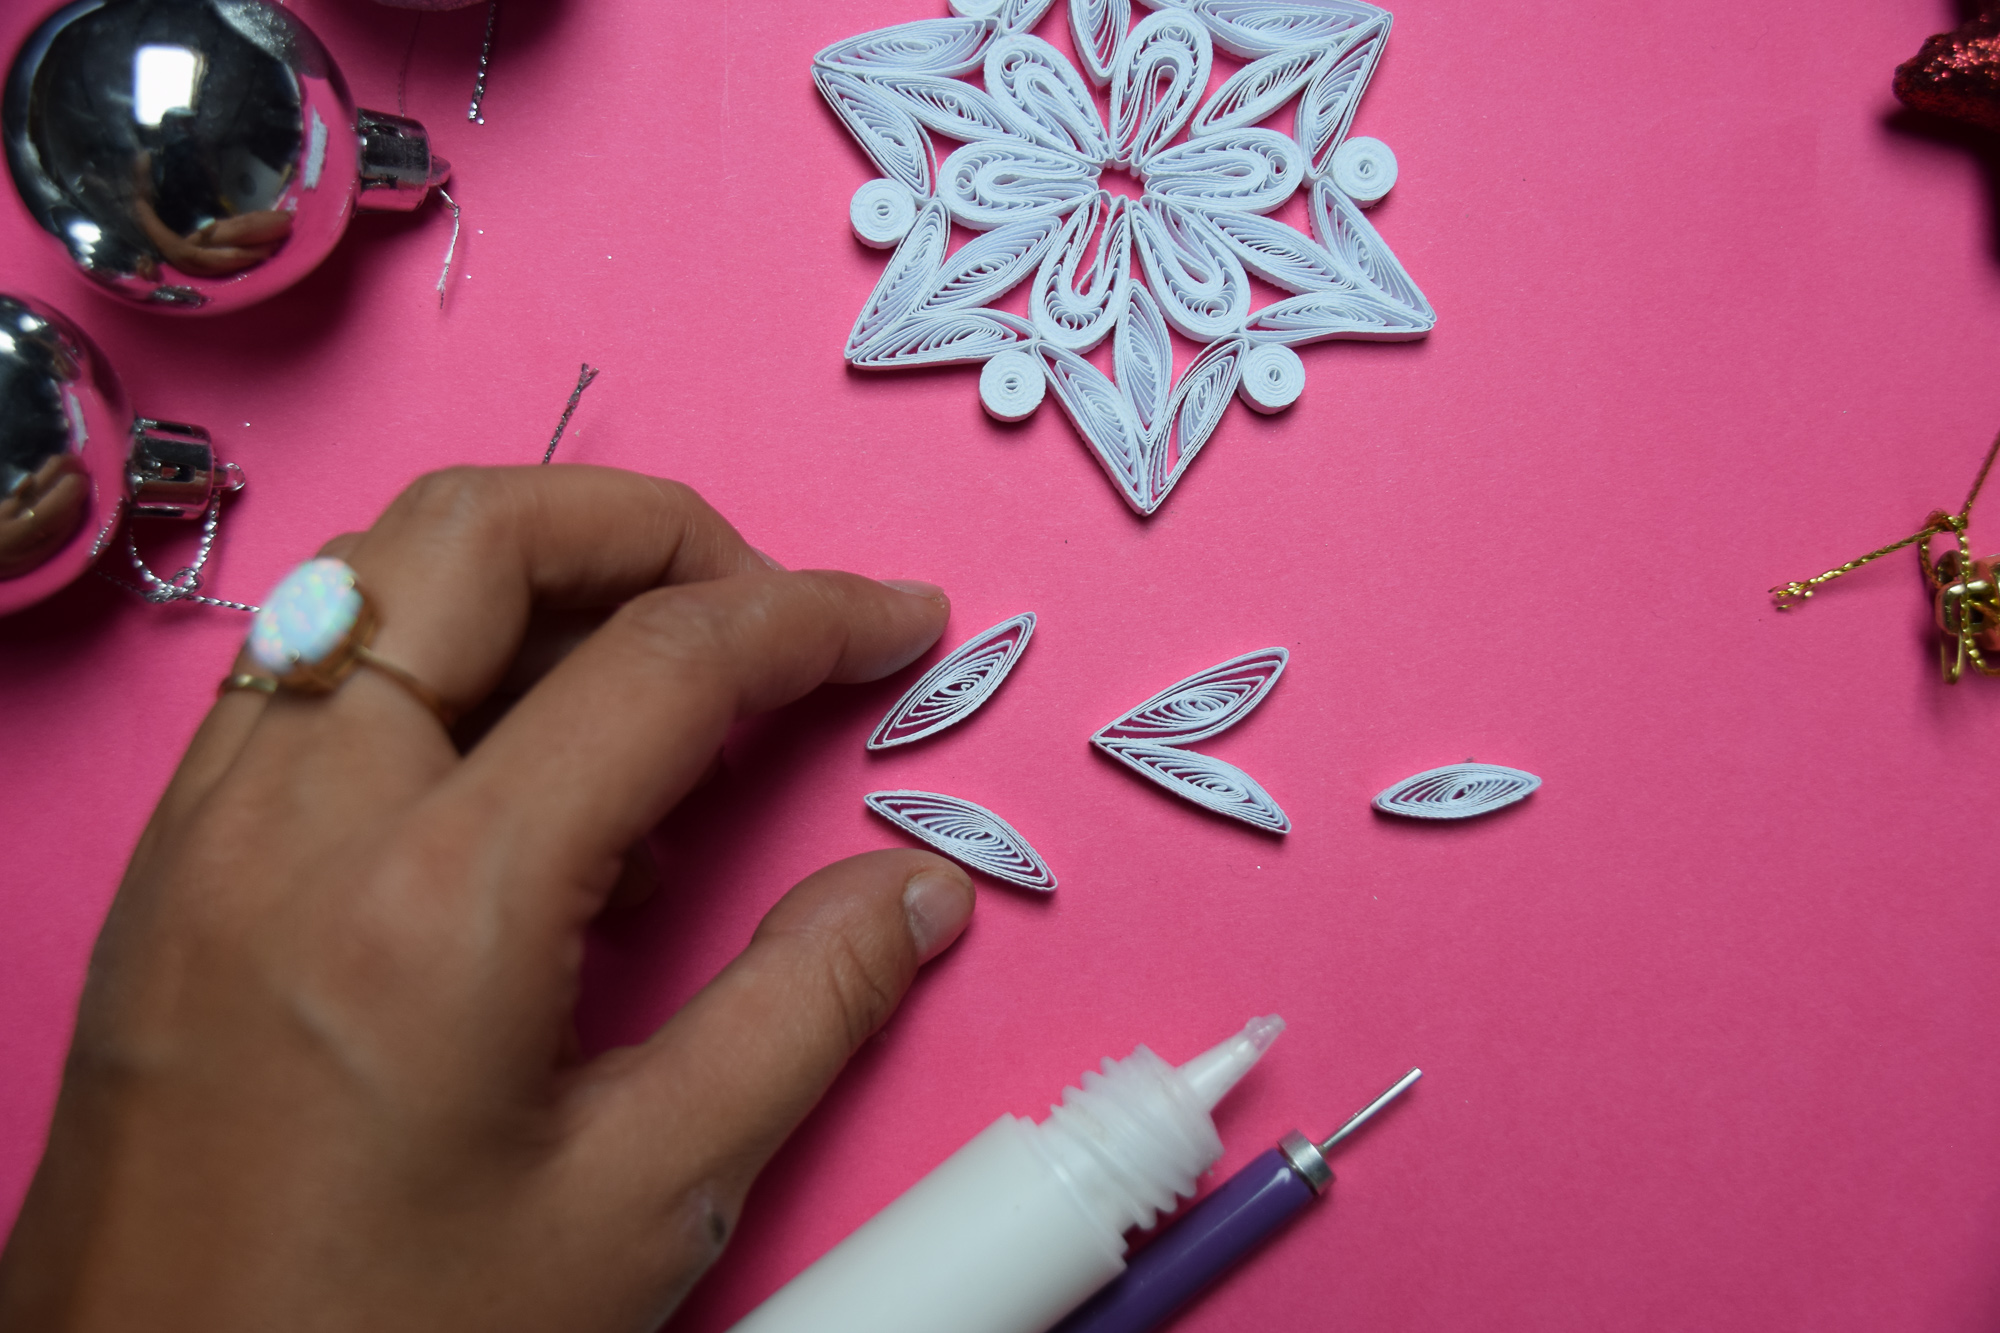 How to Make 6-Pointed Paper Snowflakes | Handmade Paper Ornaments for the Christmas Tree #quilling #howto #tutorial #paperart #diyproject #diy #treeornament #snowflake